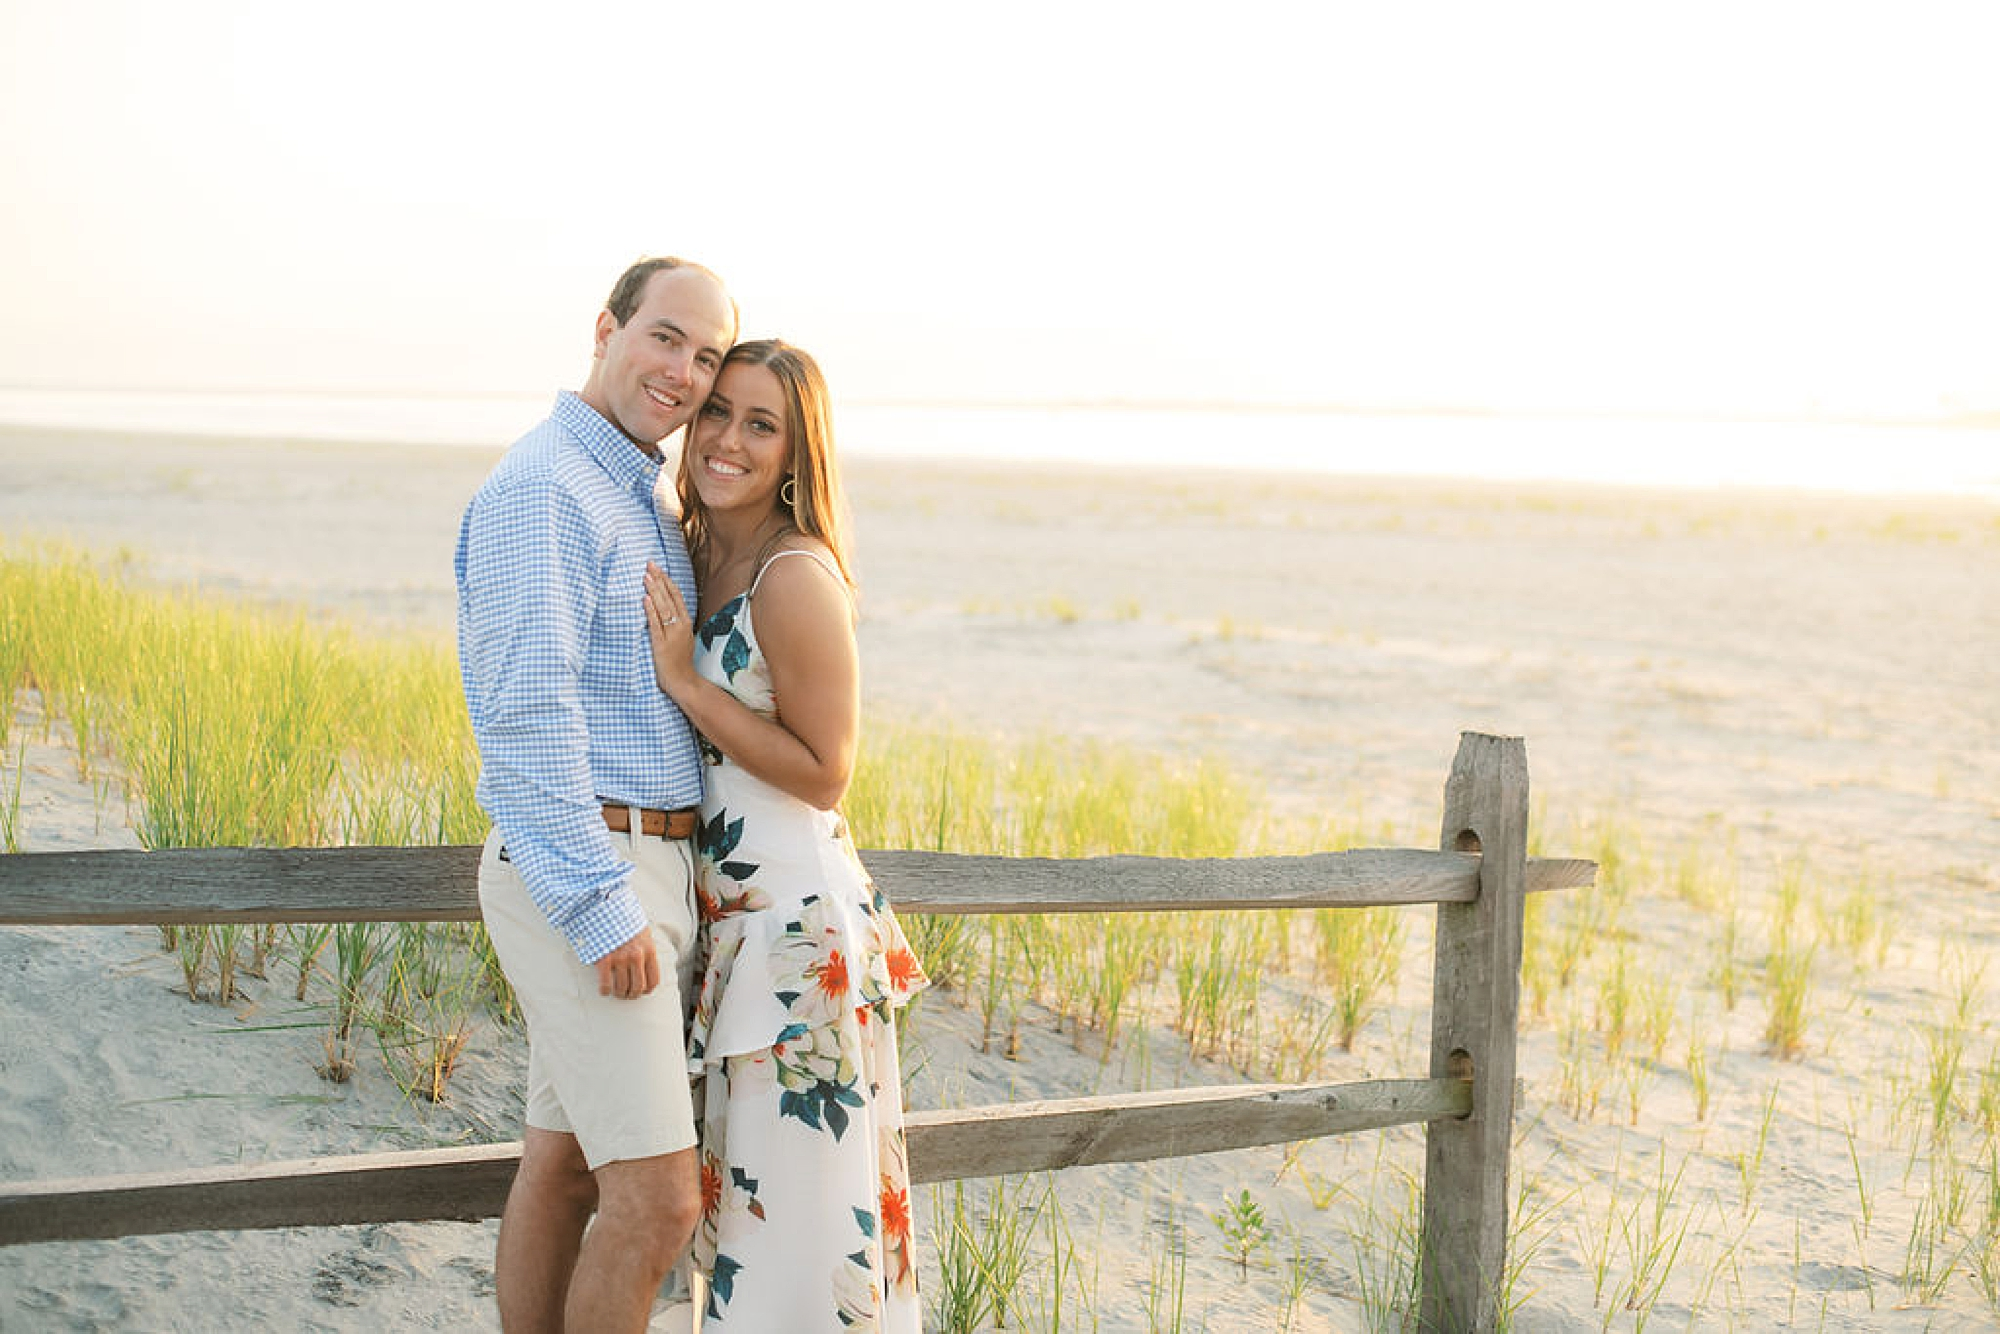 Organic and Romantic Engagement Photography in Ocean City NJ by Magdalena Studios 0015